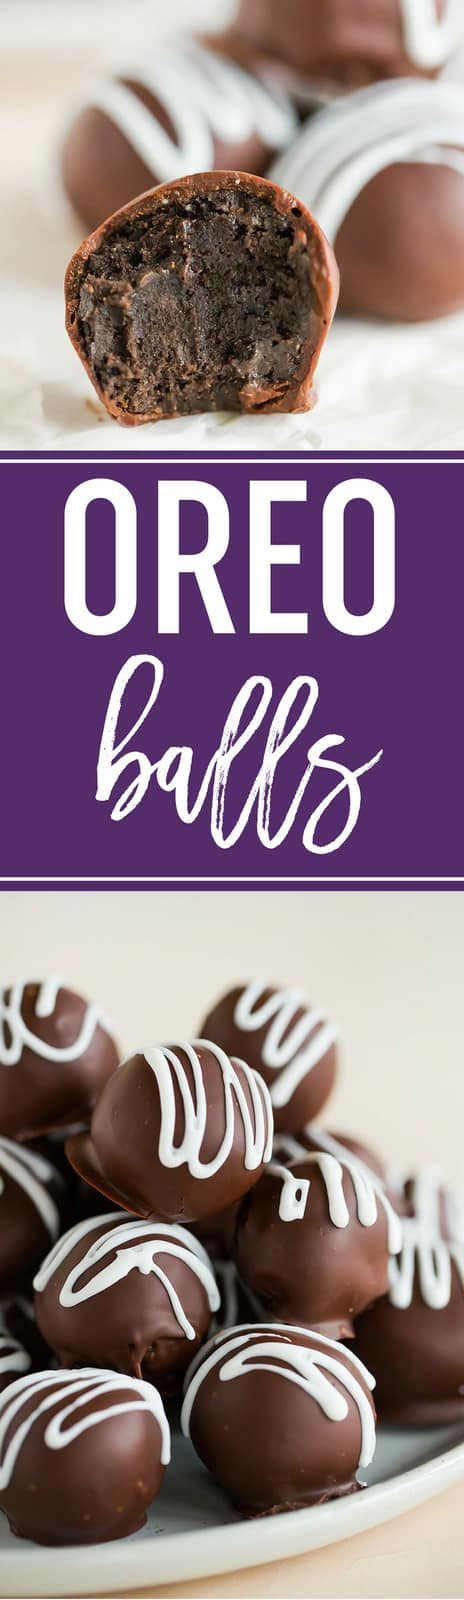 OREO Balls (or Oreo truffles, if we're being fancy) is a total classic and a must for holiday cookie trays! #truffles #Oreos #balls #christmas #holidays #baking #candy #creamcheese